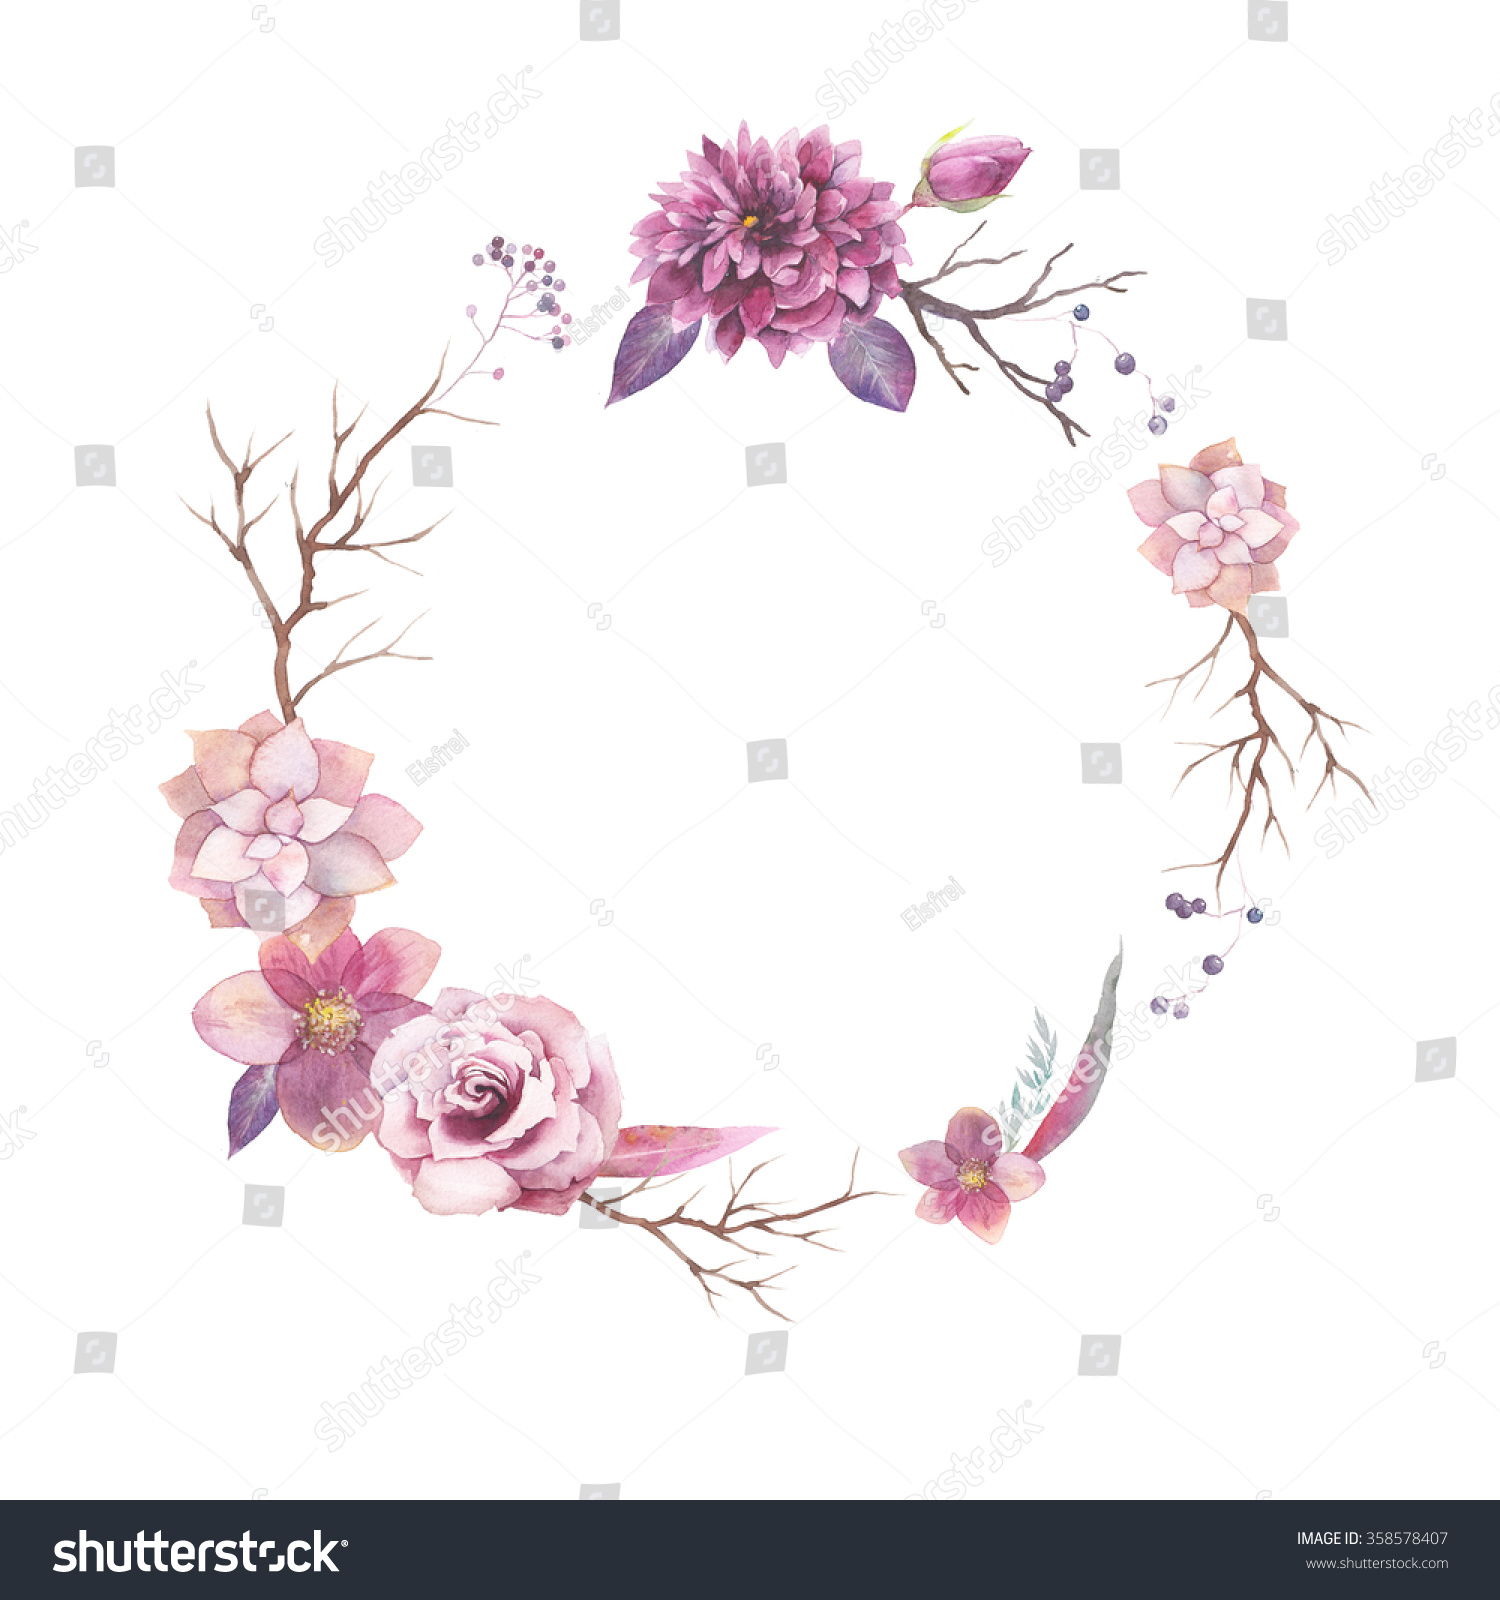 Rose Flower Border Happy Mothers Day Quotes Wallpaper Watercolor Floral Wreath Isolated On White